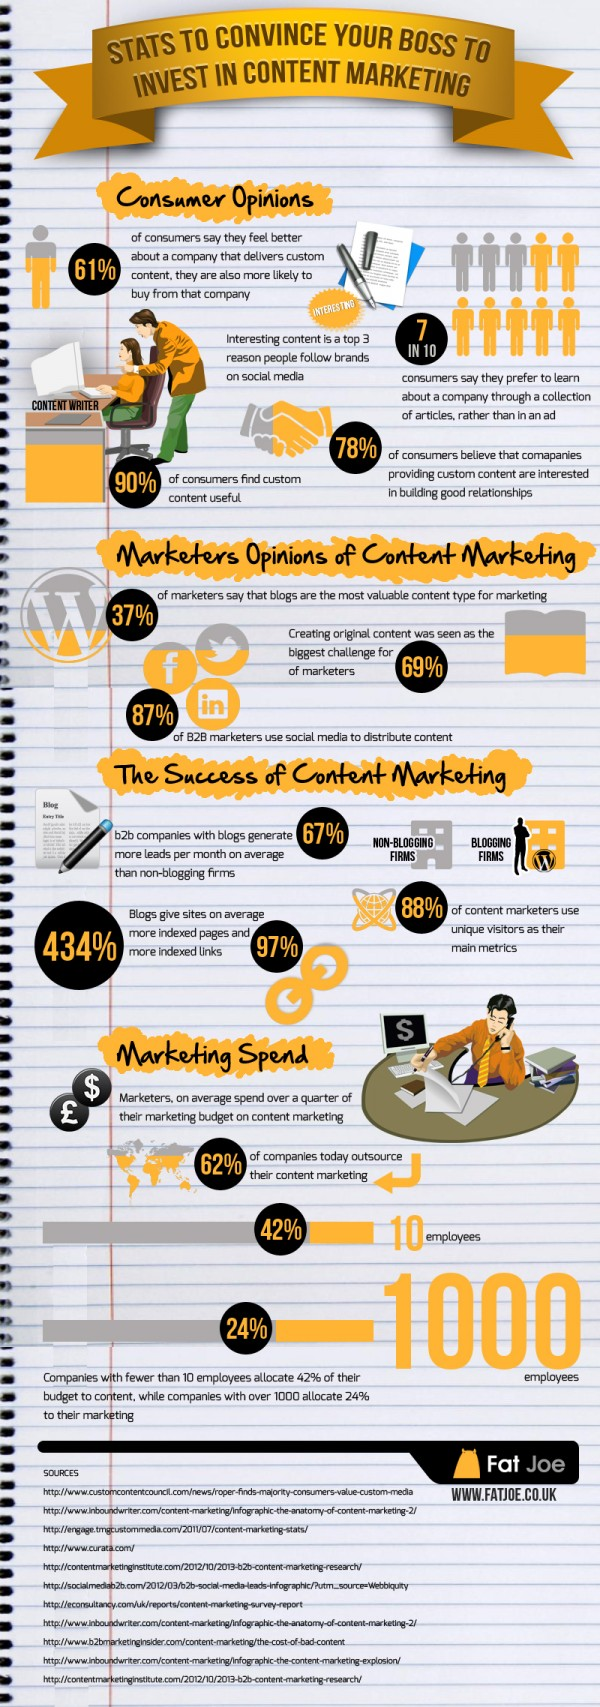 How content drives a business (credit: www.fatjoe.co.uk)